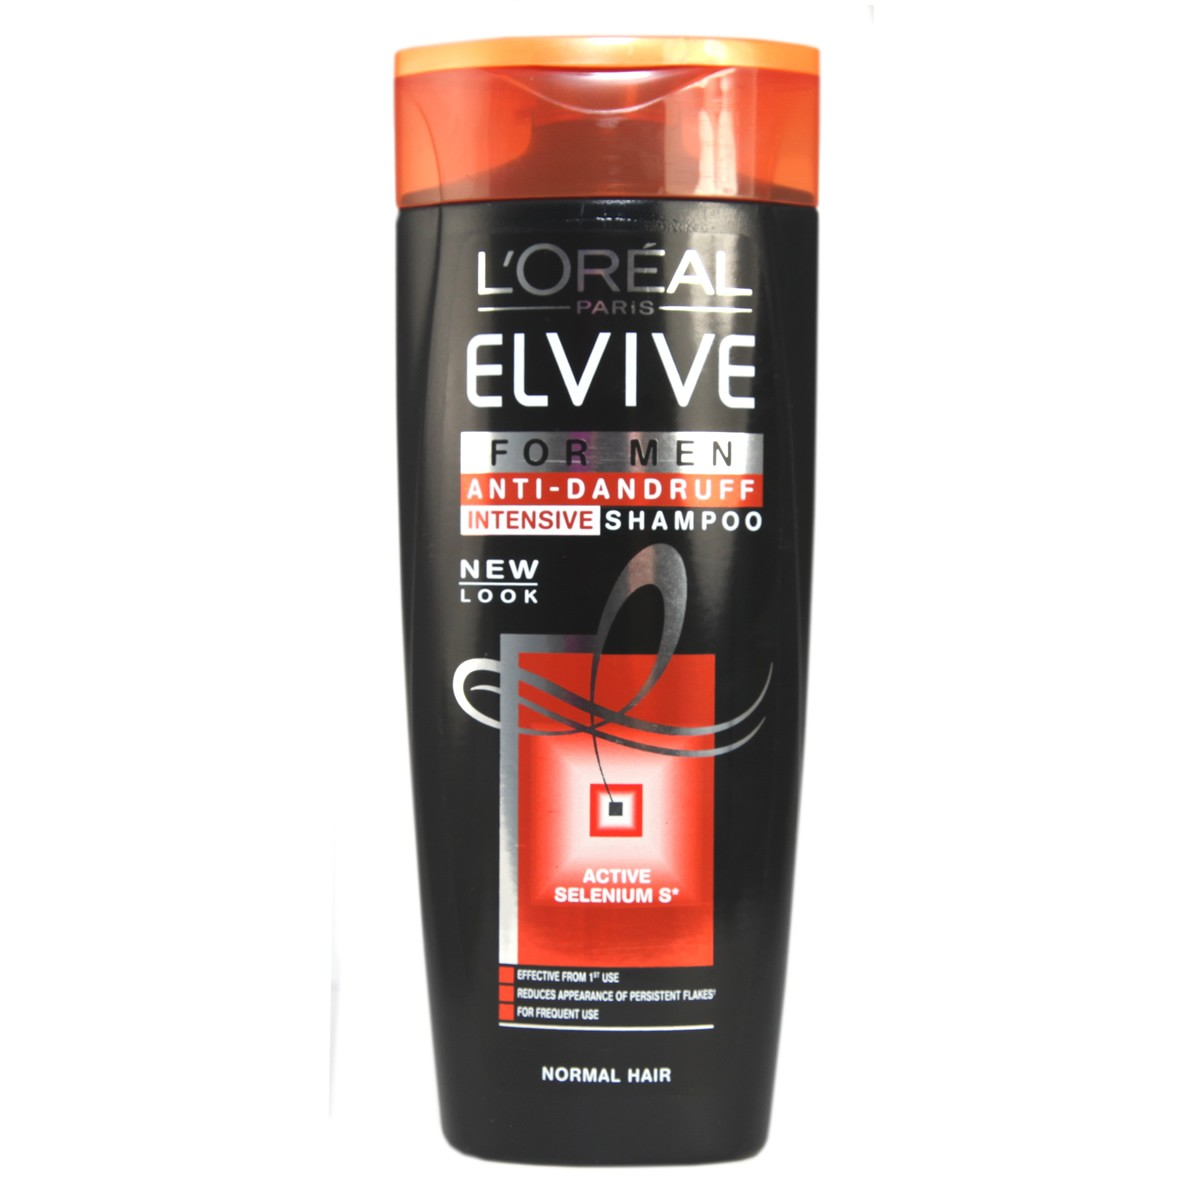 L'Oreal Paris Elvive For Men Anti-Dandruff Intensive Shampoo